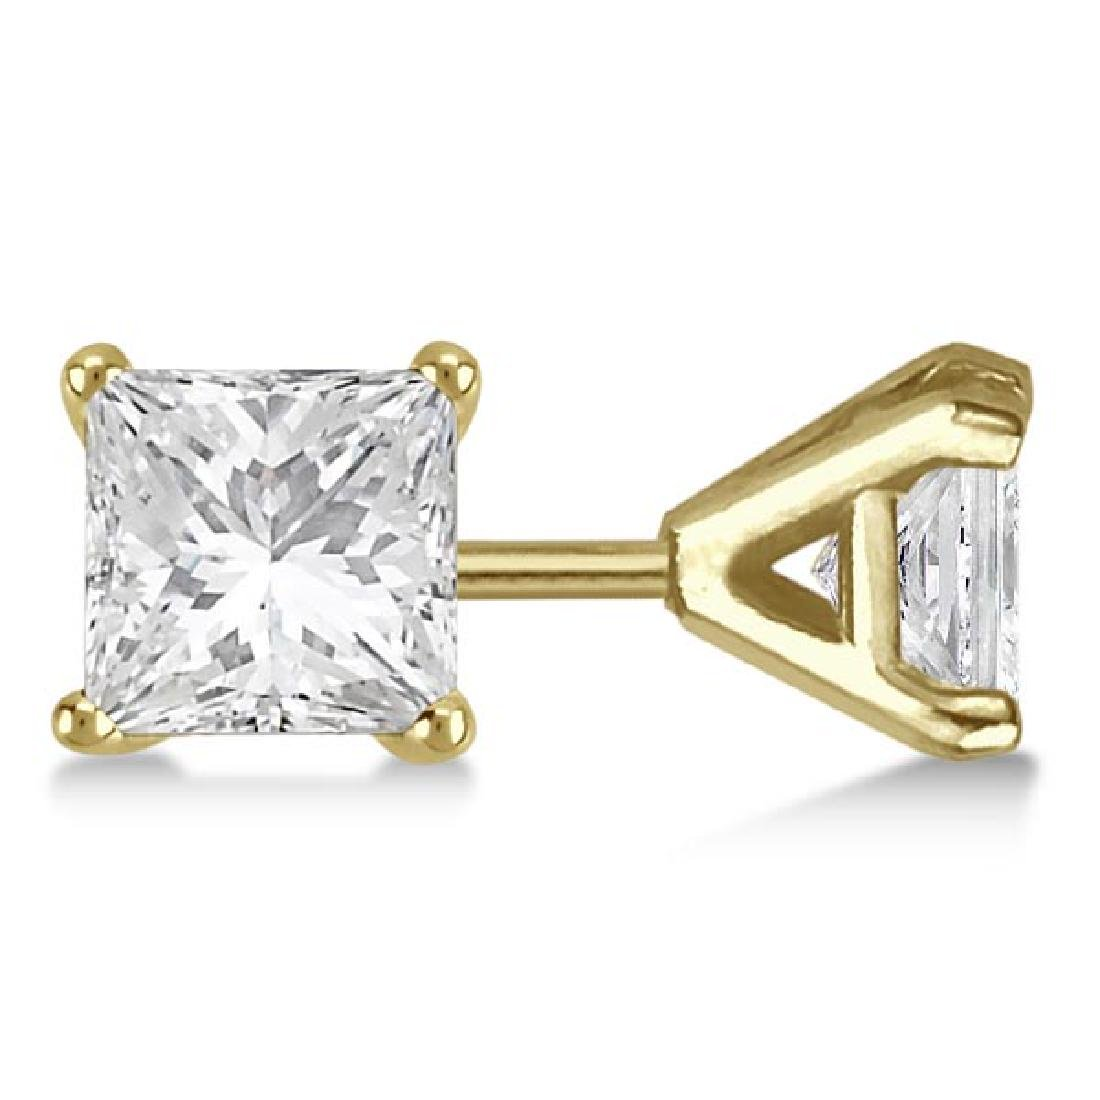 1.00ct. Martini Princess Diamond Stud Earrings 14kt Yel